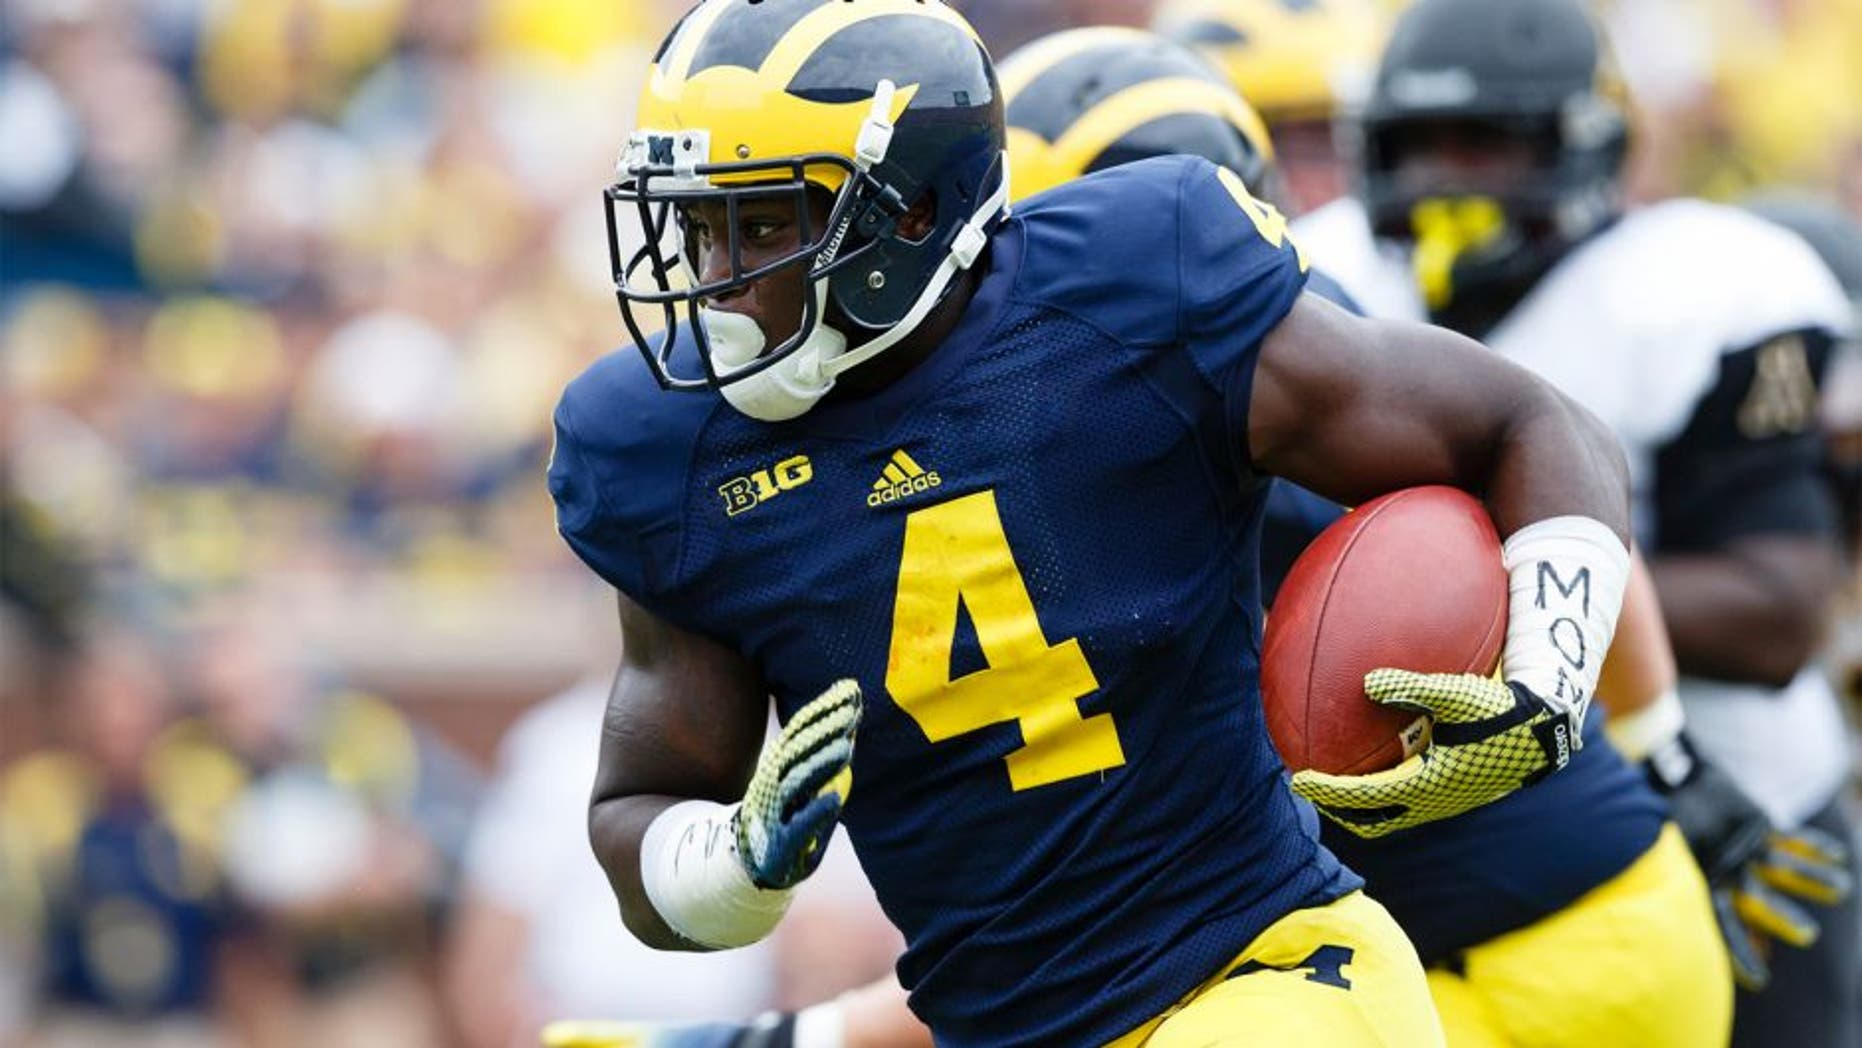 Aug 30, 2014; Ann Arbor, MI, USA; Michigan Wolverines running back De'Veon Smith (4) rushes for a touchdown in the third quarter against the Appalachian State Mountaineers at Michigan Stadium. Michigan won 52-14. Mandatory Credit: Rick Osentoski-USA TODAY Sports